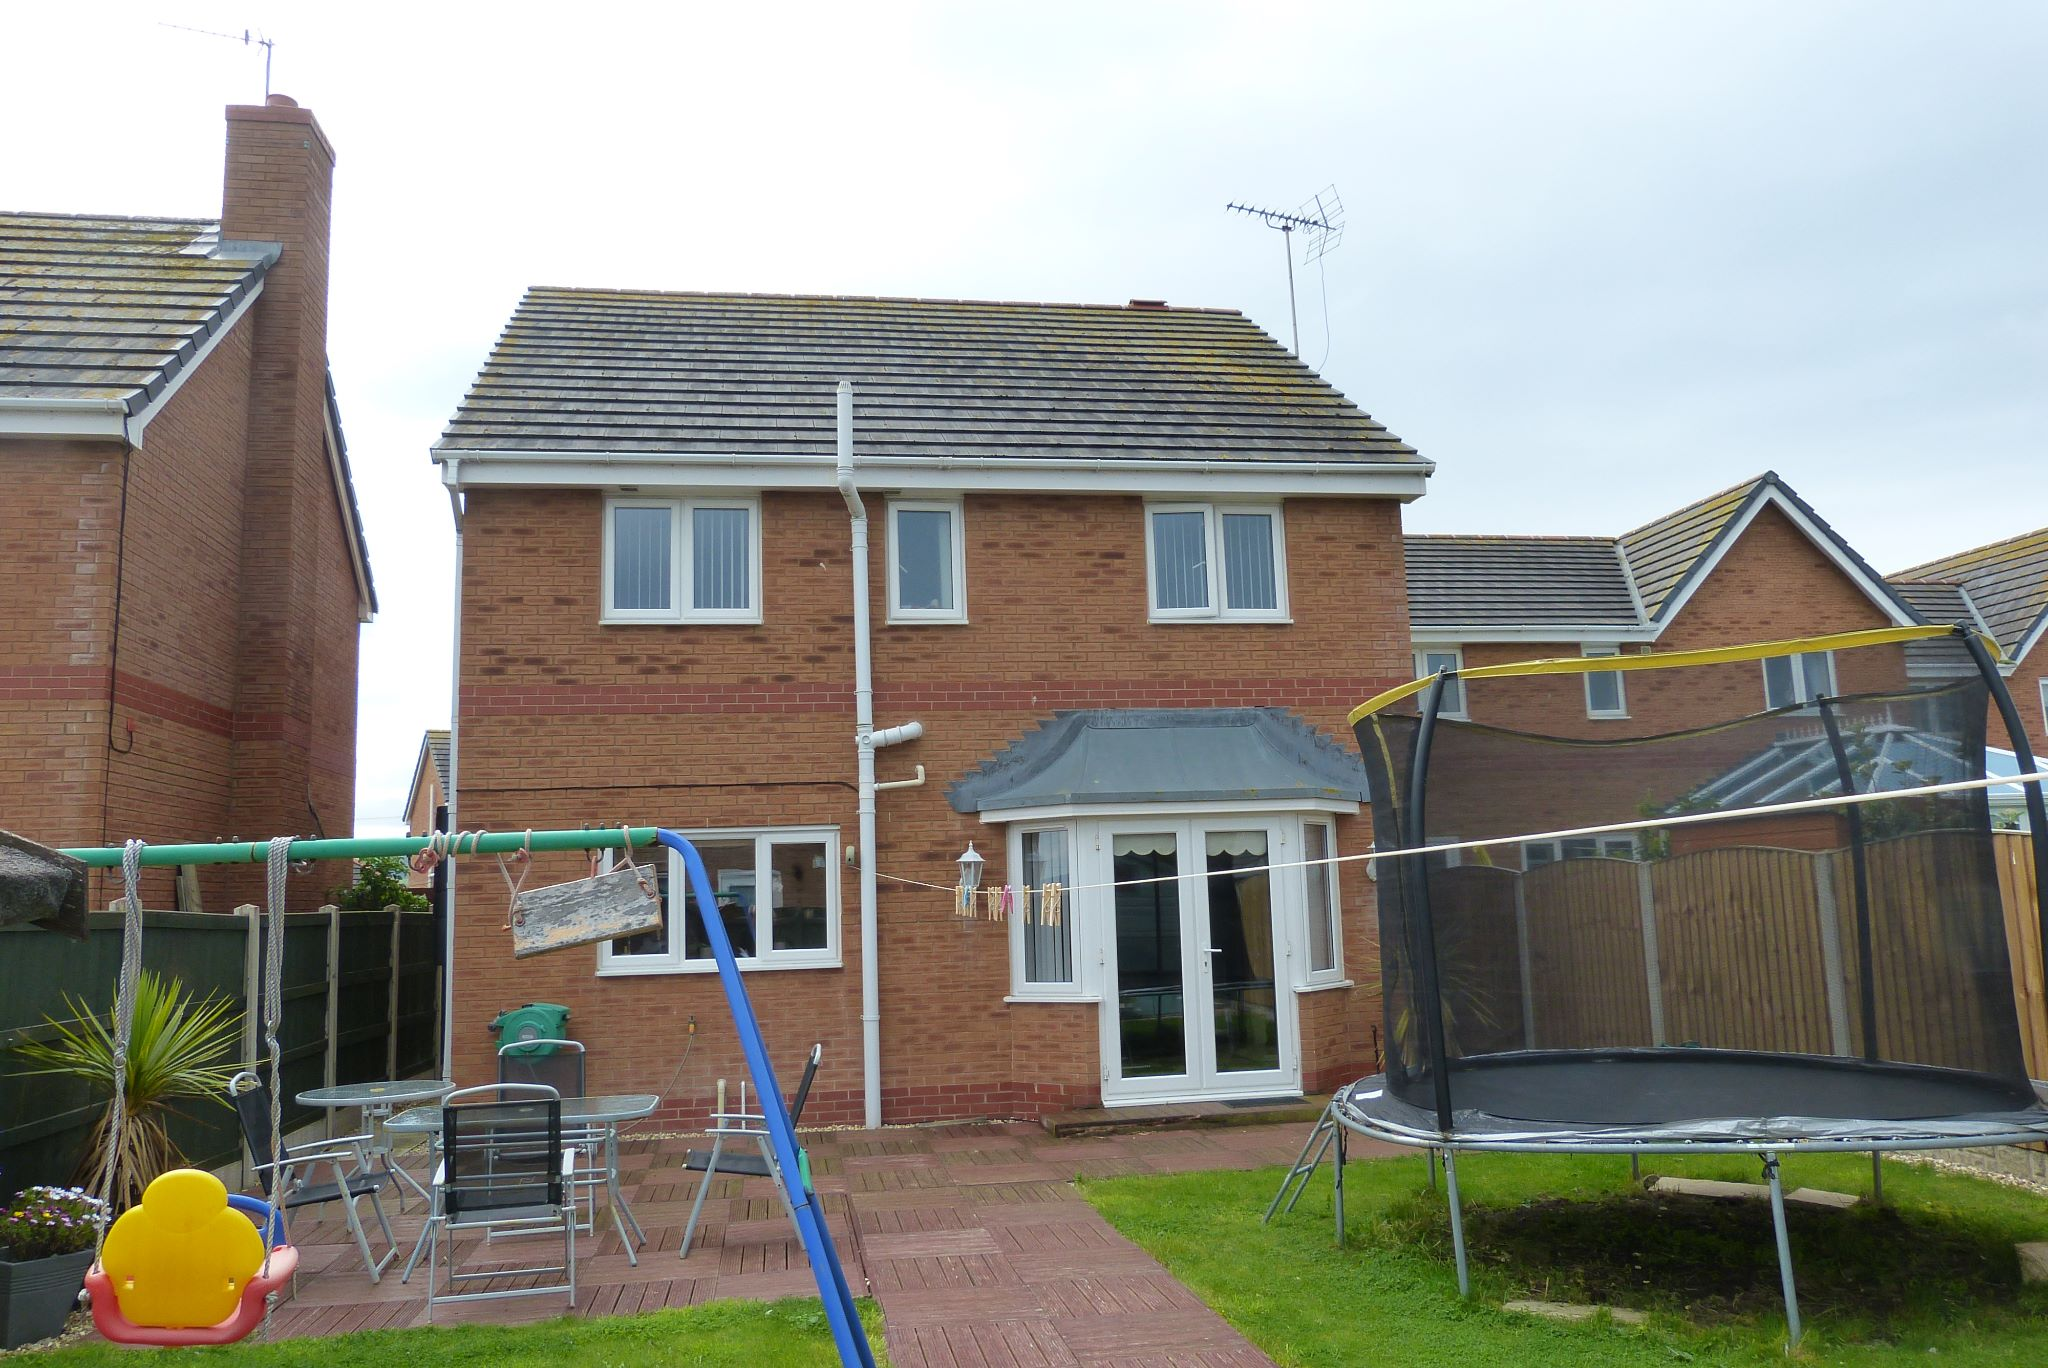 4 bedroom detached house SSTC in Abergele - Photograph 10